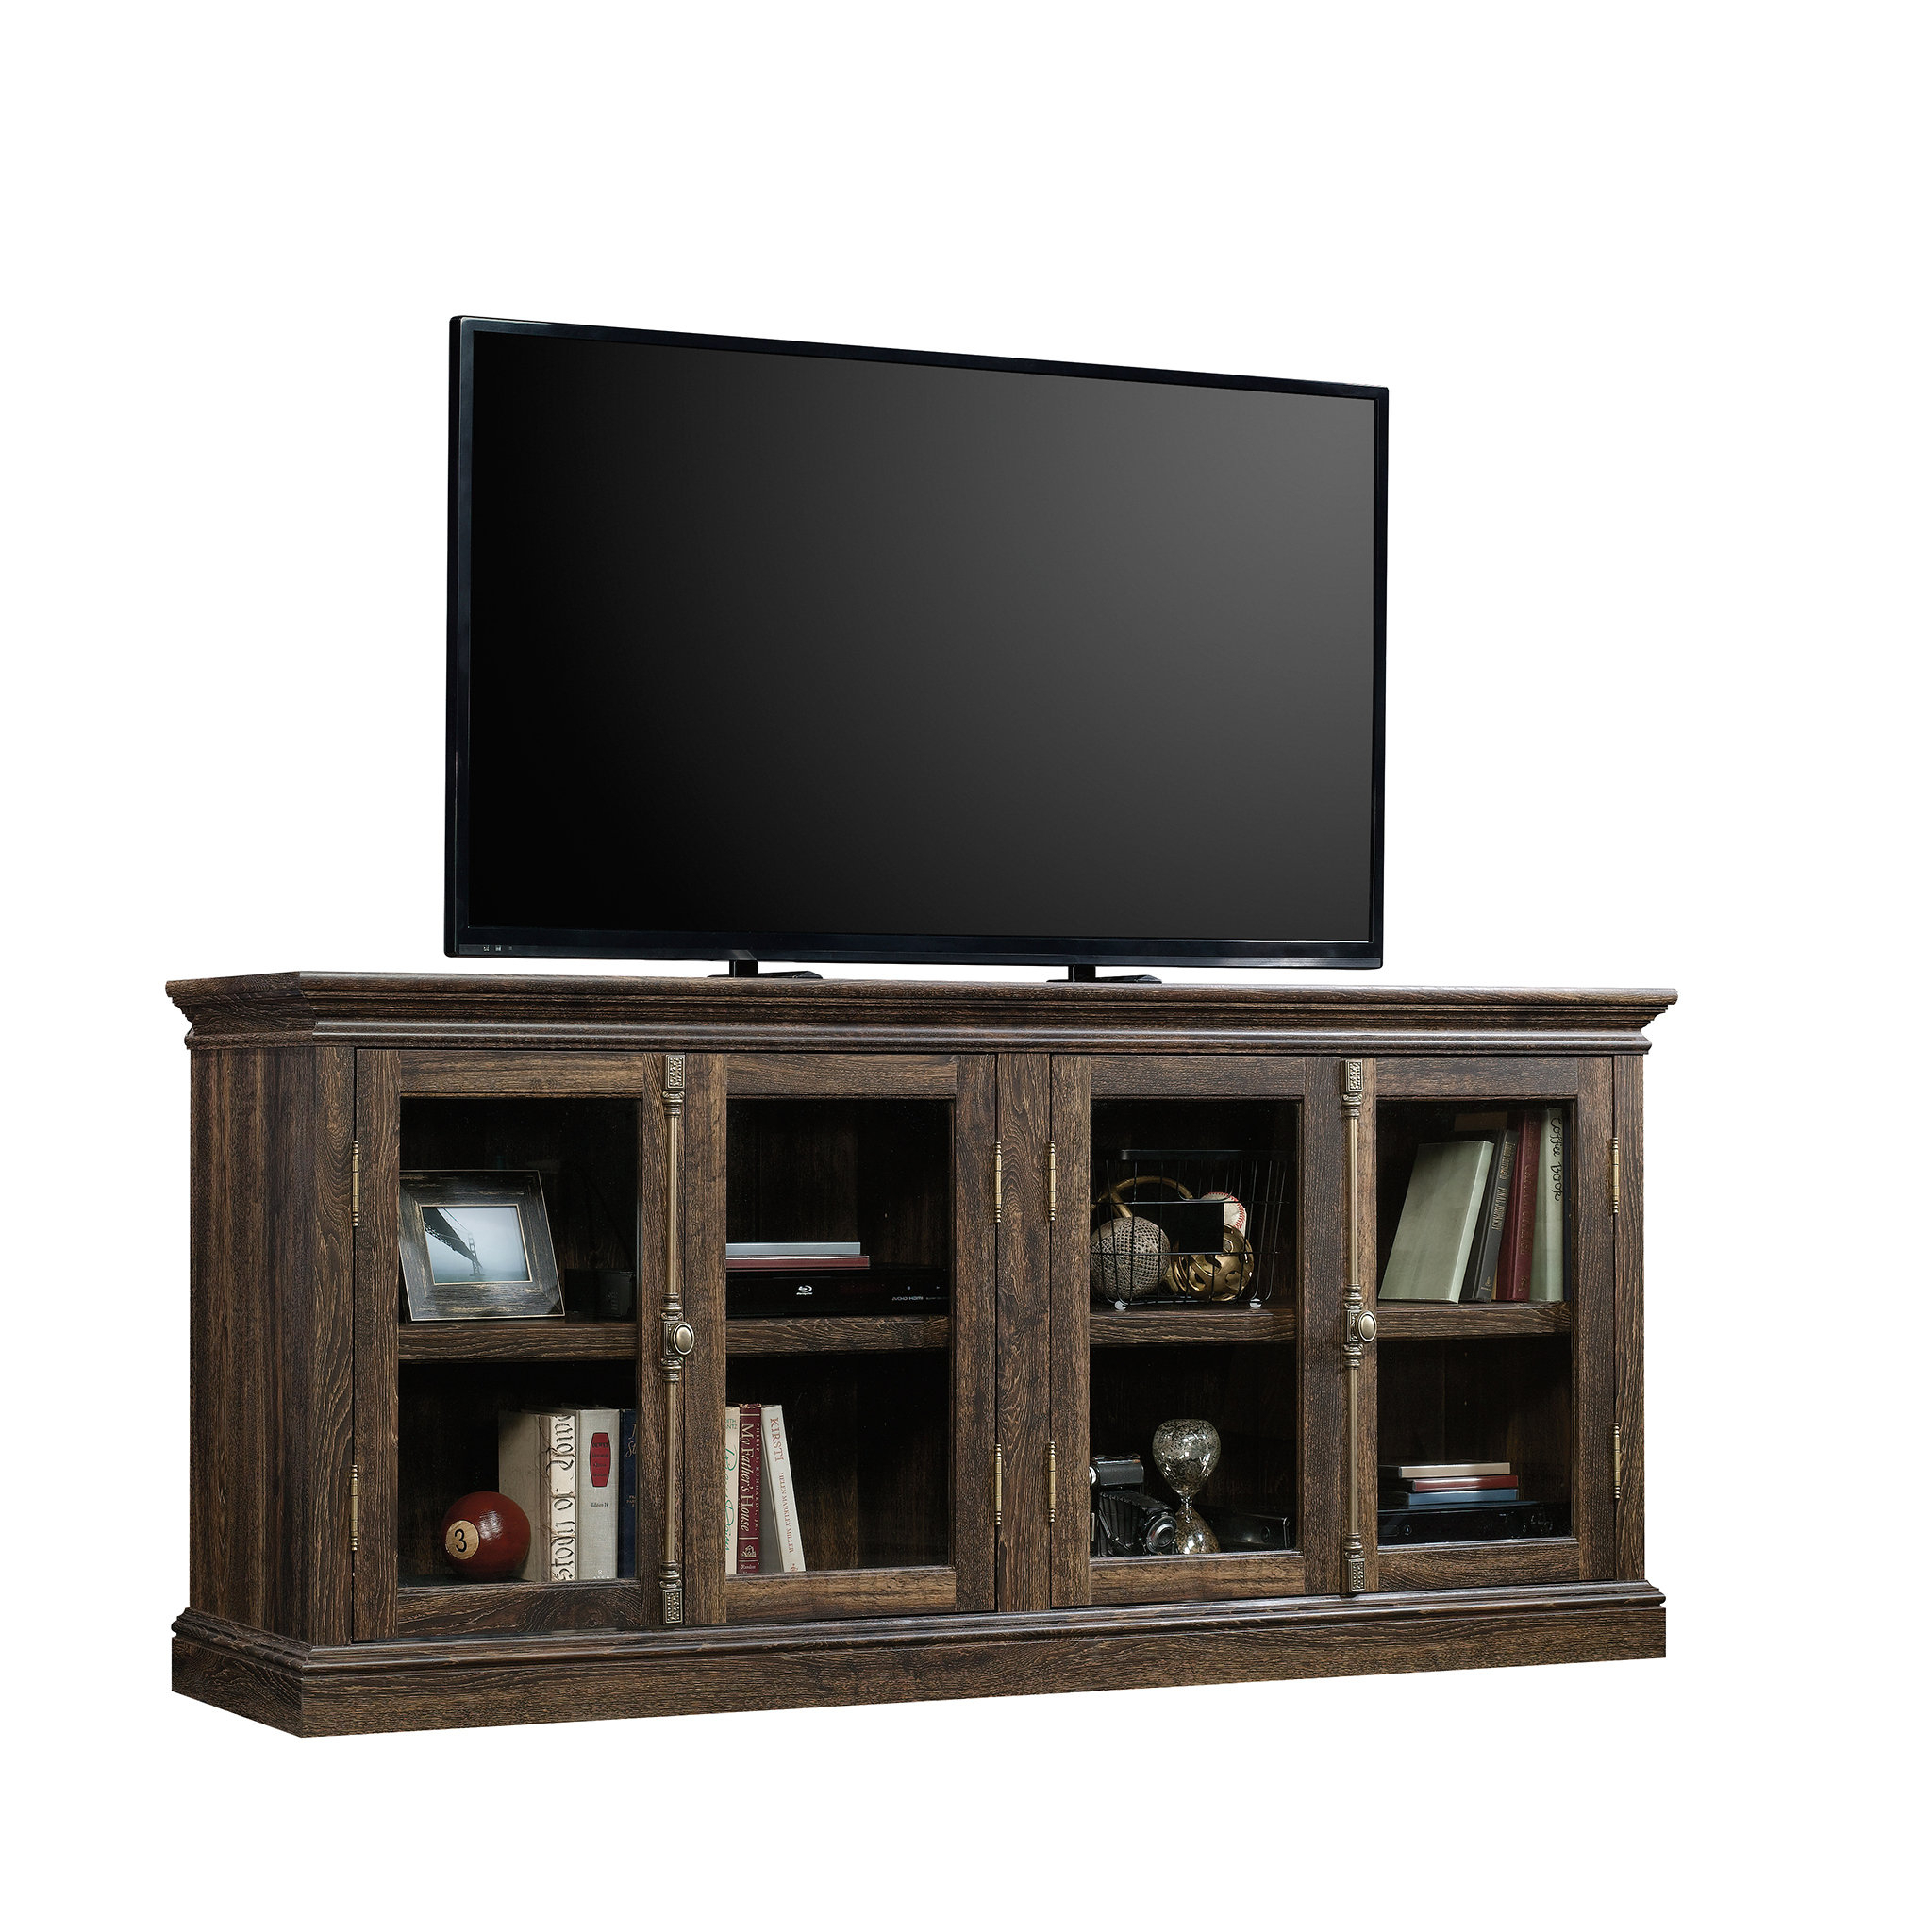 70 Inch Tv Stands | Joss & Main with regard to Walton Grey 72 Inch Tv Stands (Image 6 of 30)